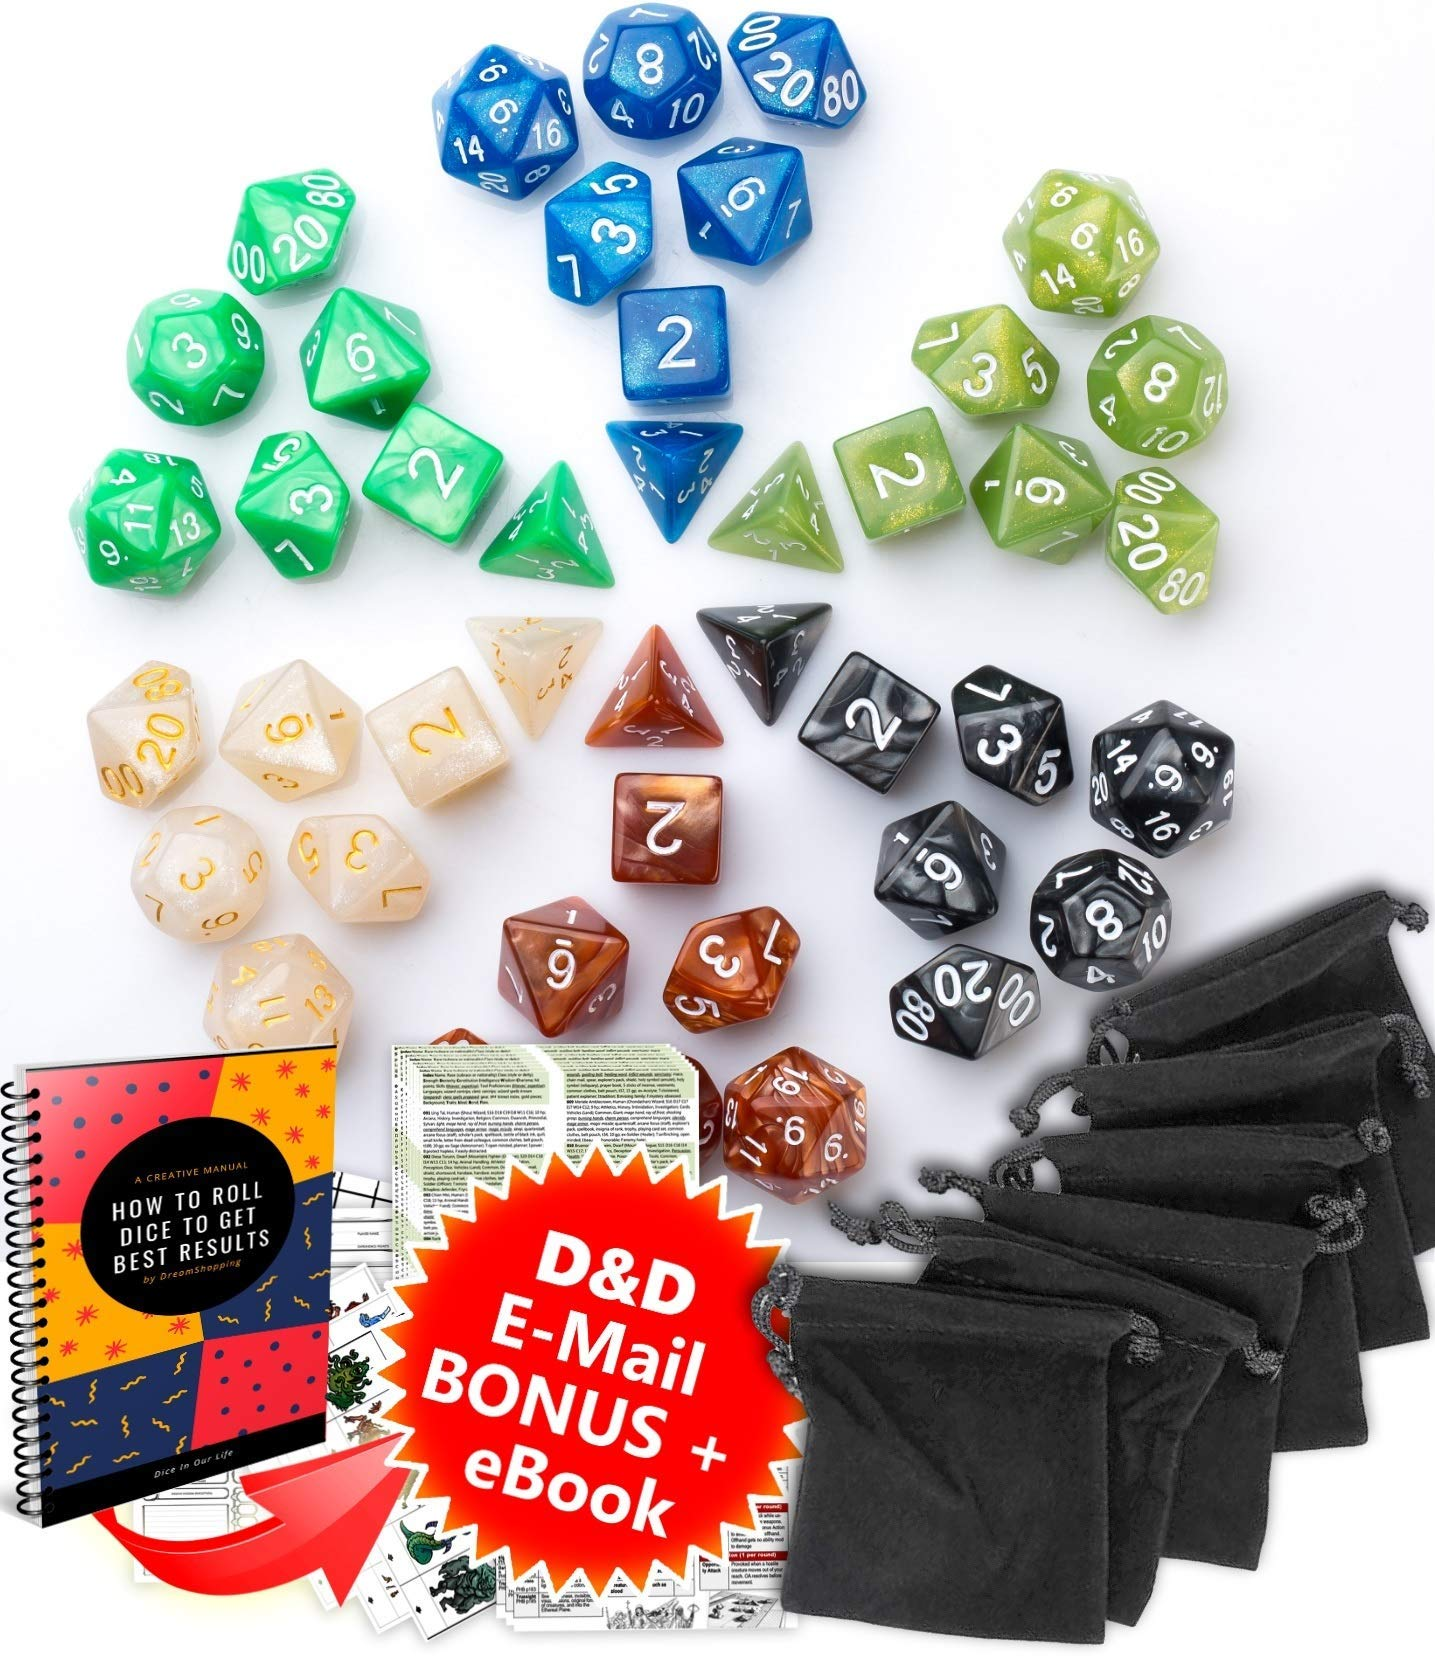 Dungeons And Dragons Dnd Dice Set 42pcs Rpg Mtg Dice D D 5e Polyhedral Dice Durable Acrylic D D Dice With D D Dice Black Bags And Roleplaying Dnd 5e Extra